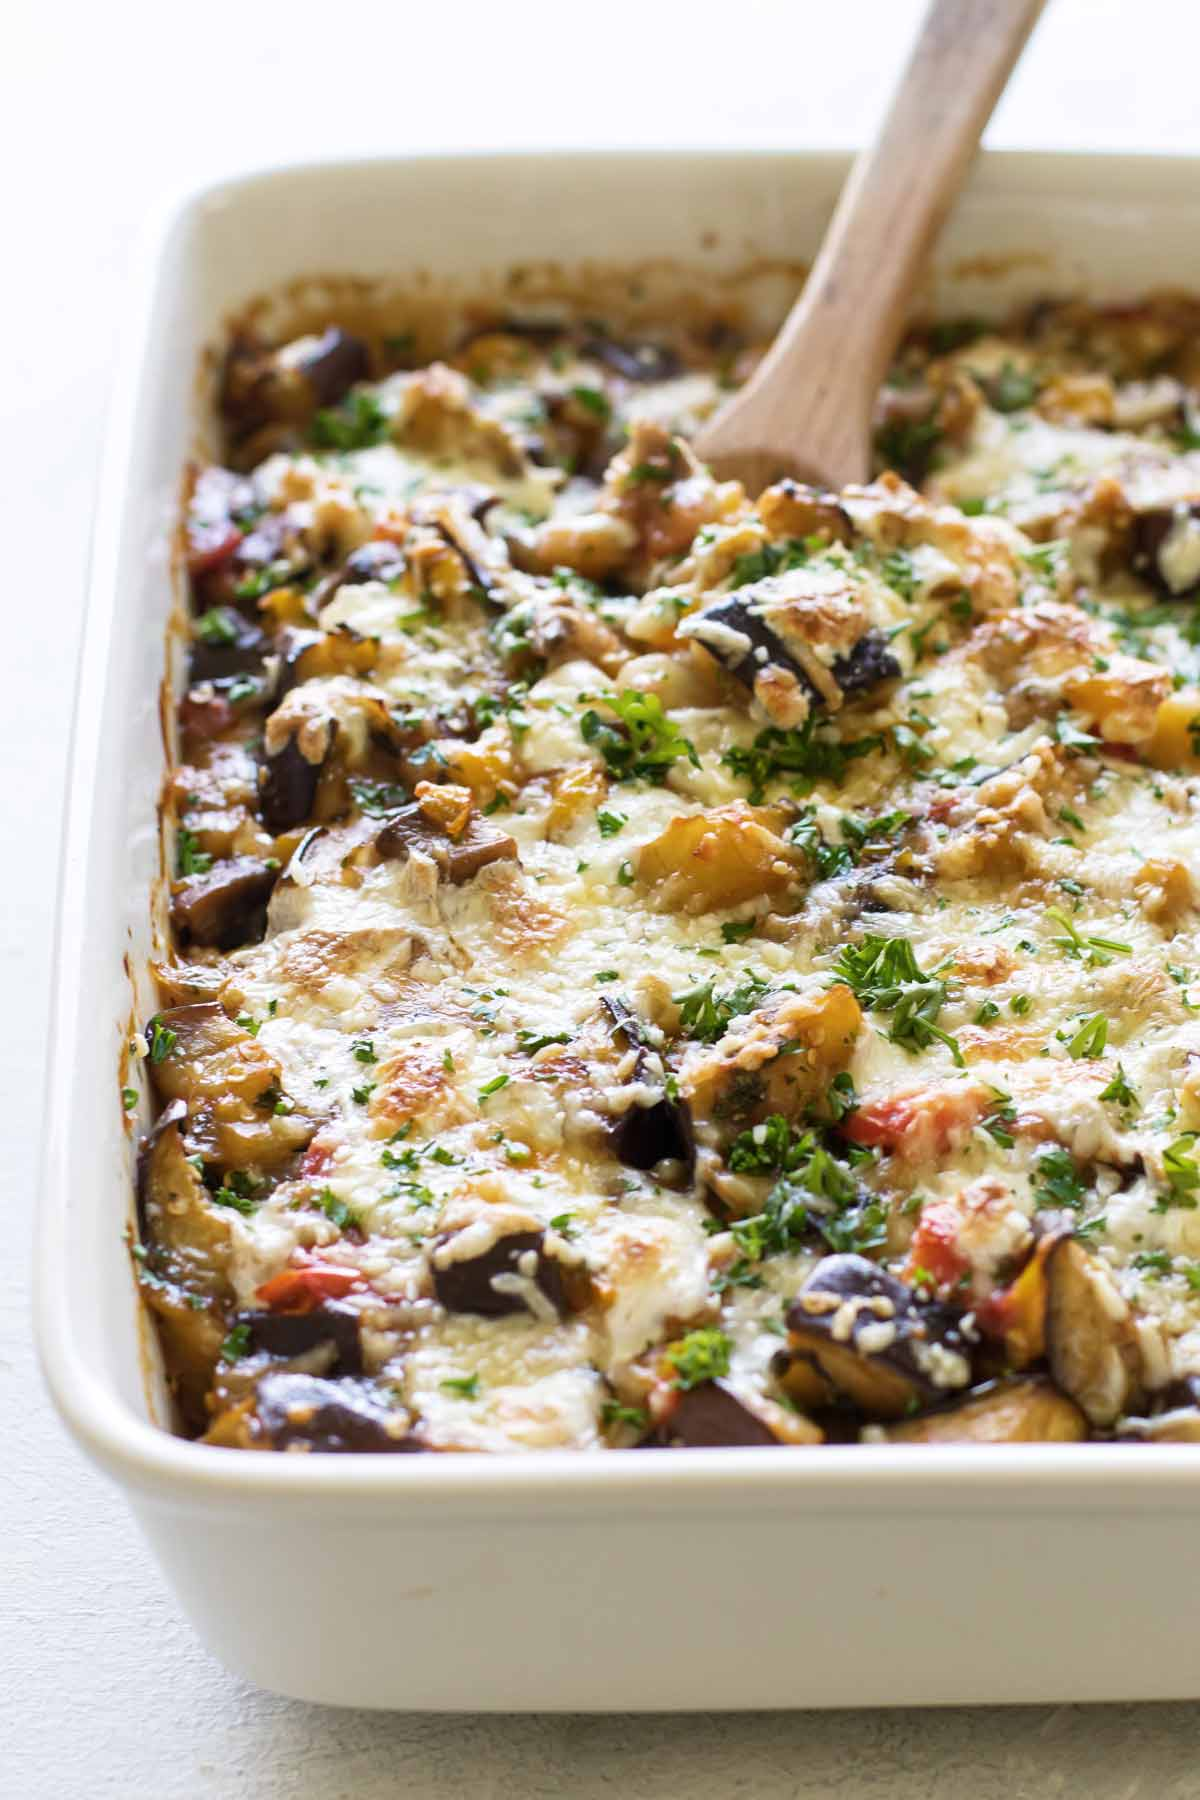 close-up photo of the casserole with a wooden spoon